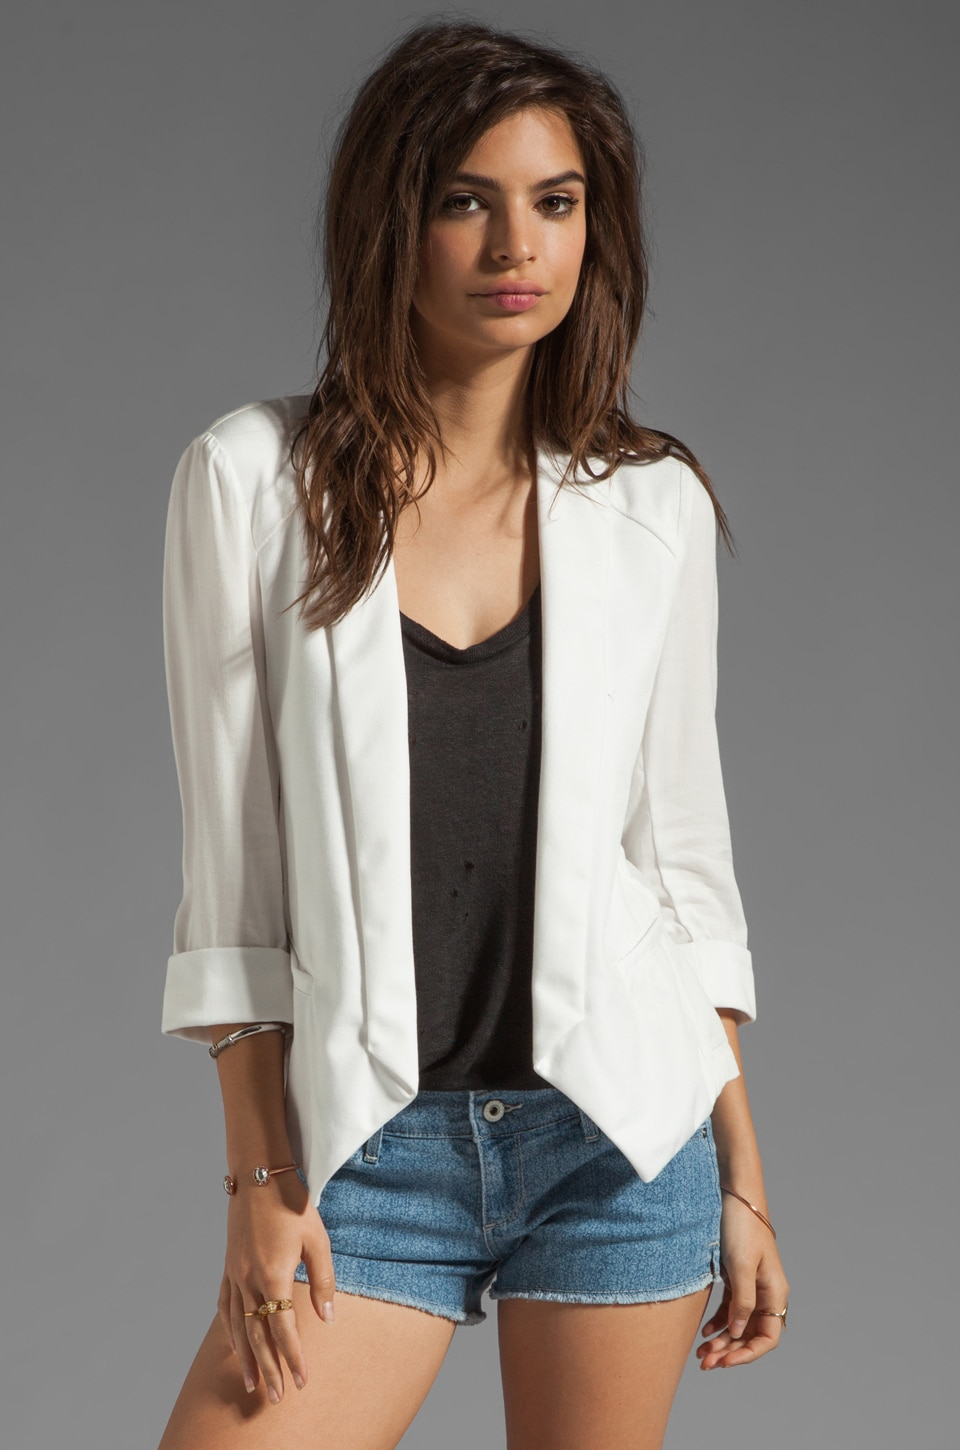 Ella Moss Aiselin Blazer in White